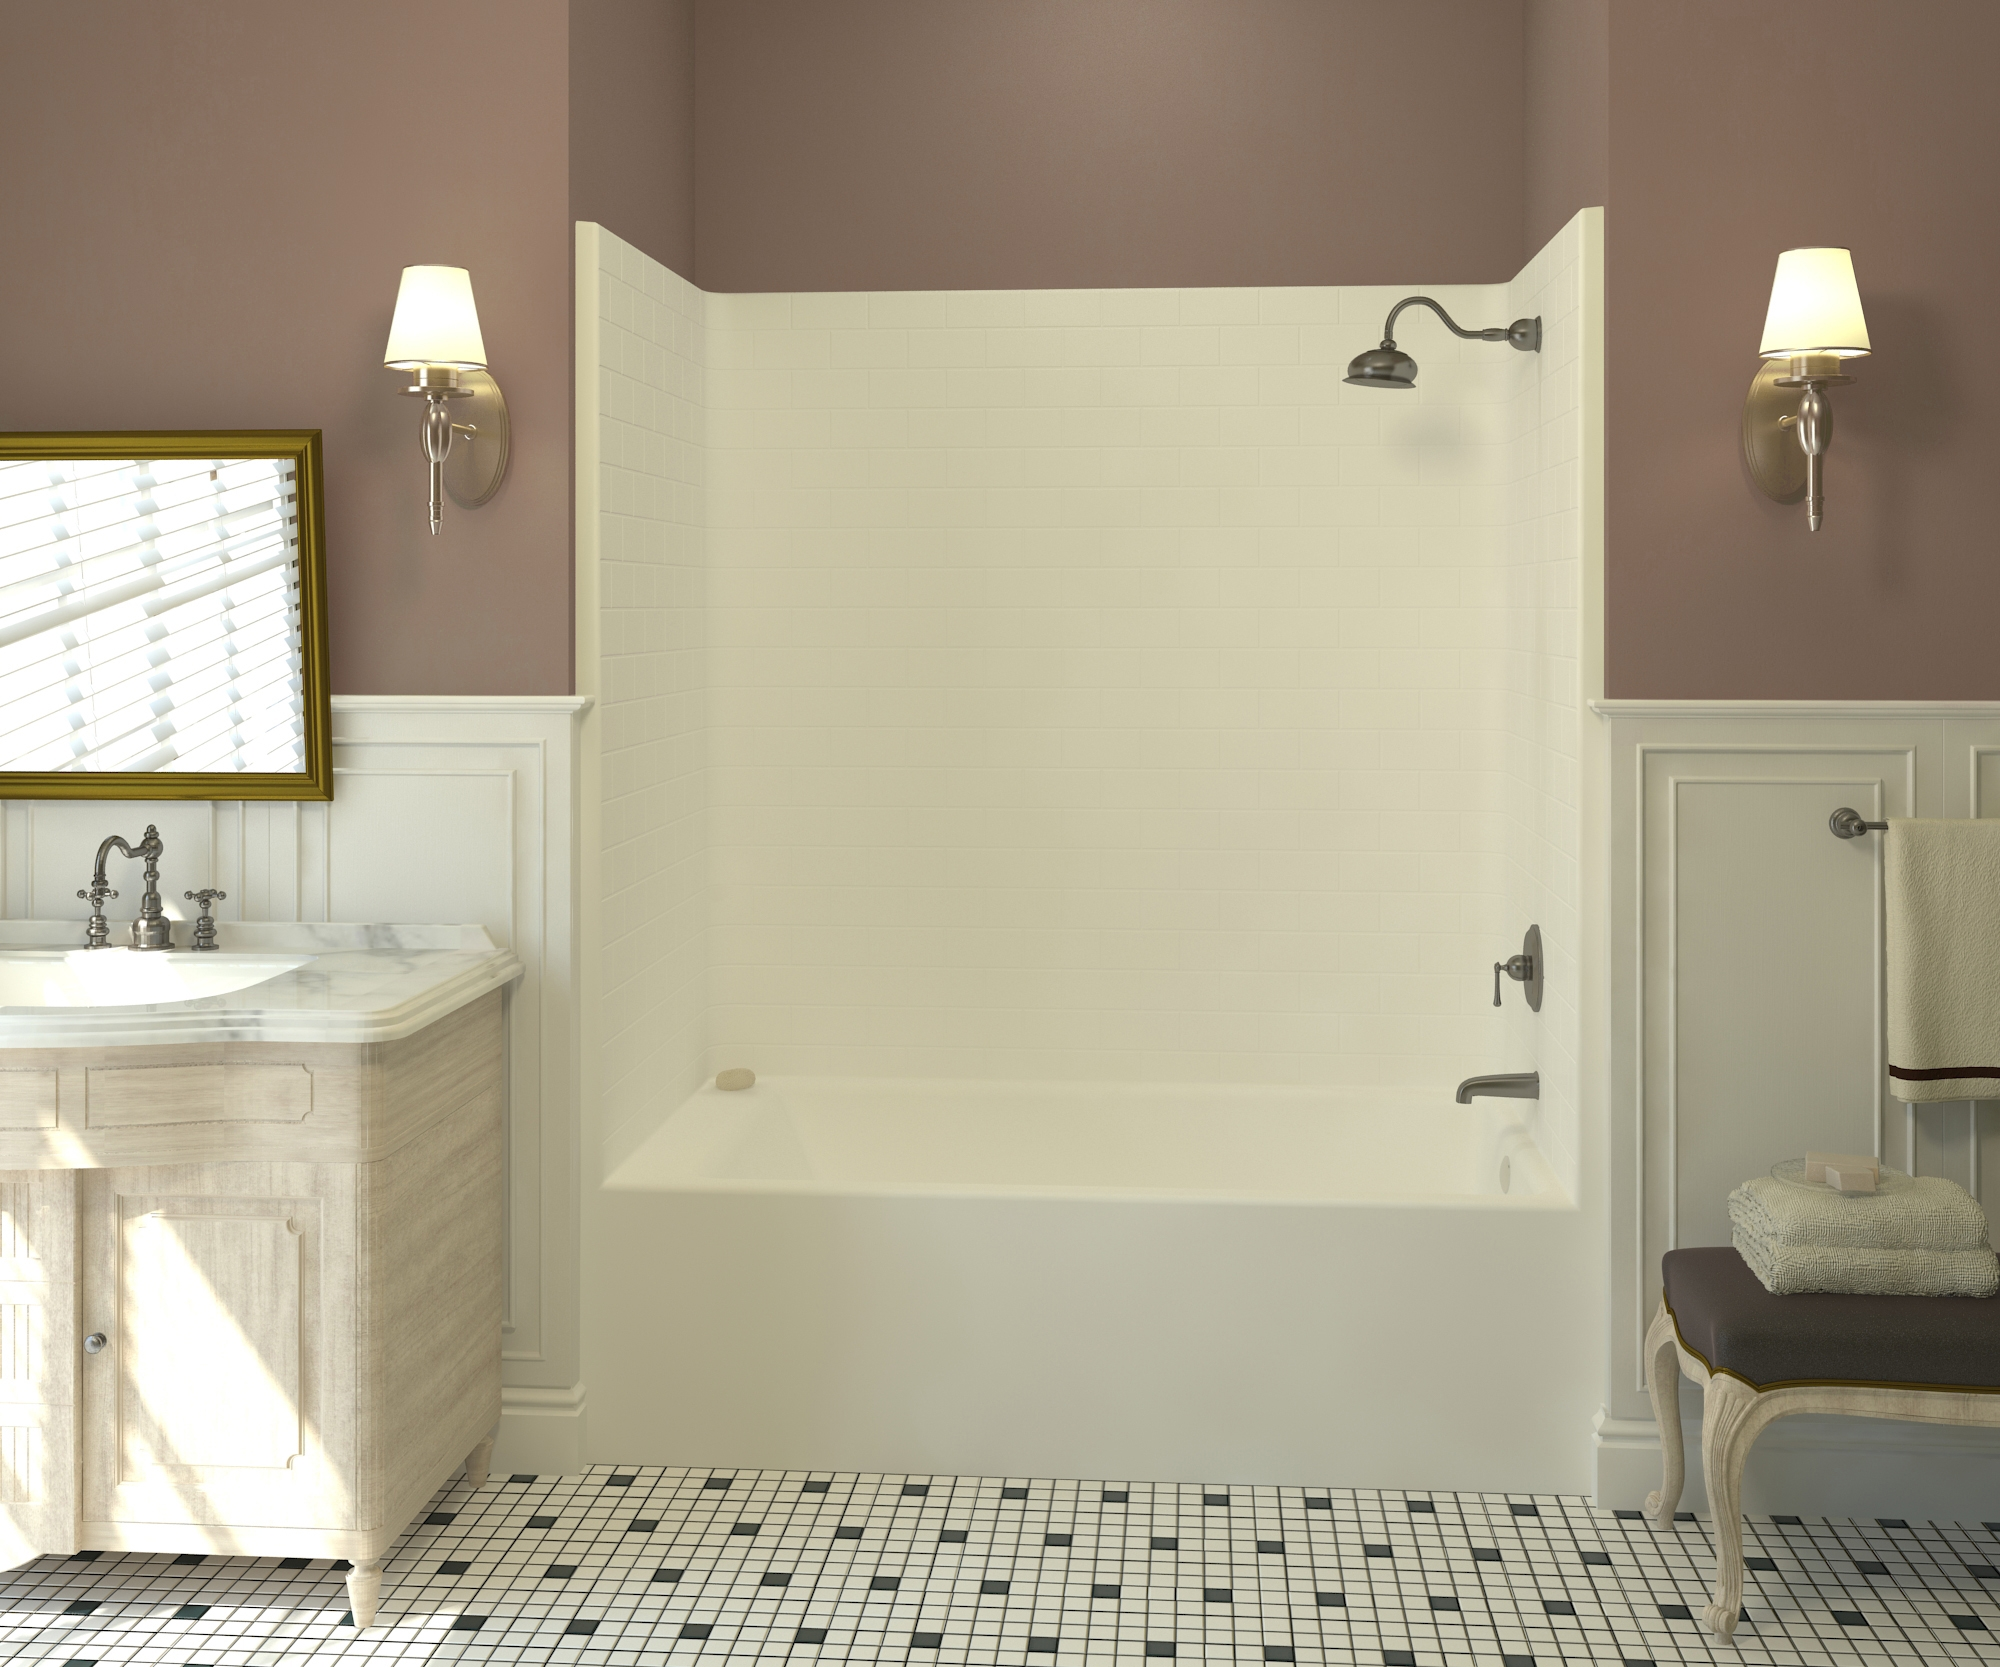 Aquatics New Subway Tile Family of TubShowers and